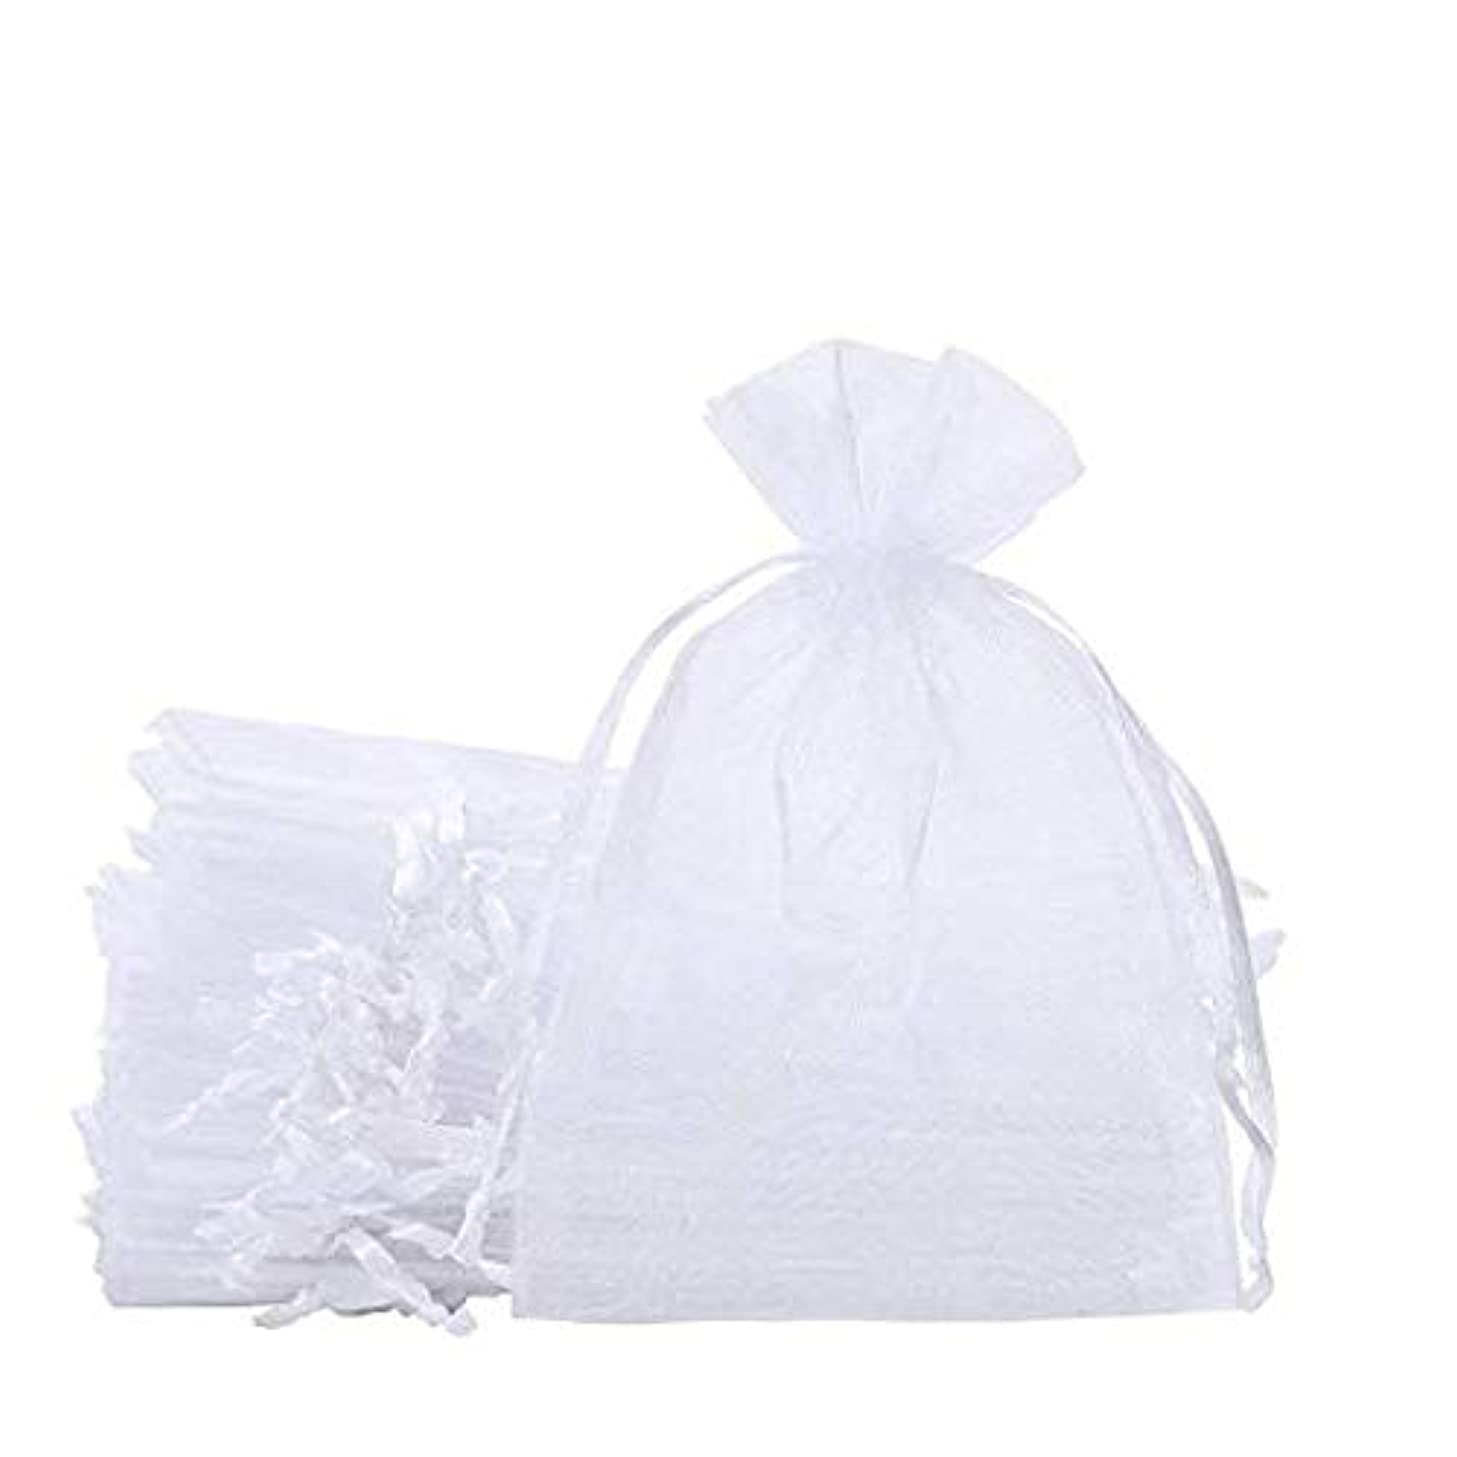 100Pcs 5x7 Inches Sheer Organza Bags Jewelry Candy Drawstring Pouches for Wedding Party Christmas Favor Gift Bags (White, 5x7